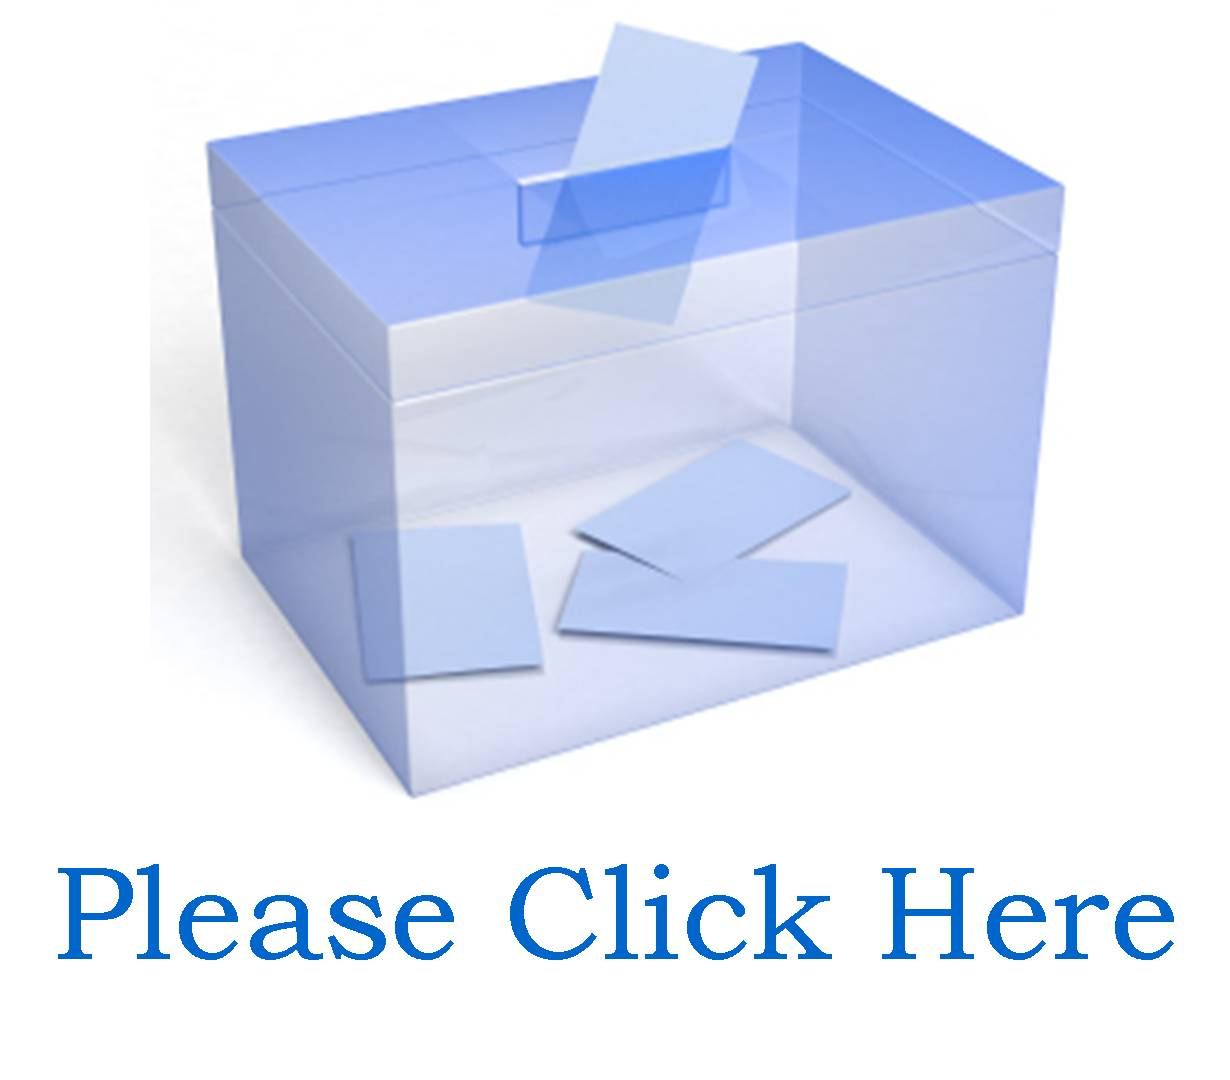 Online Suggestion Box